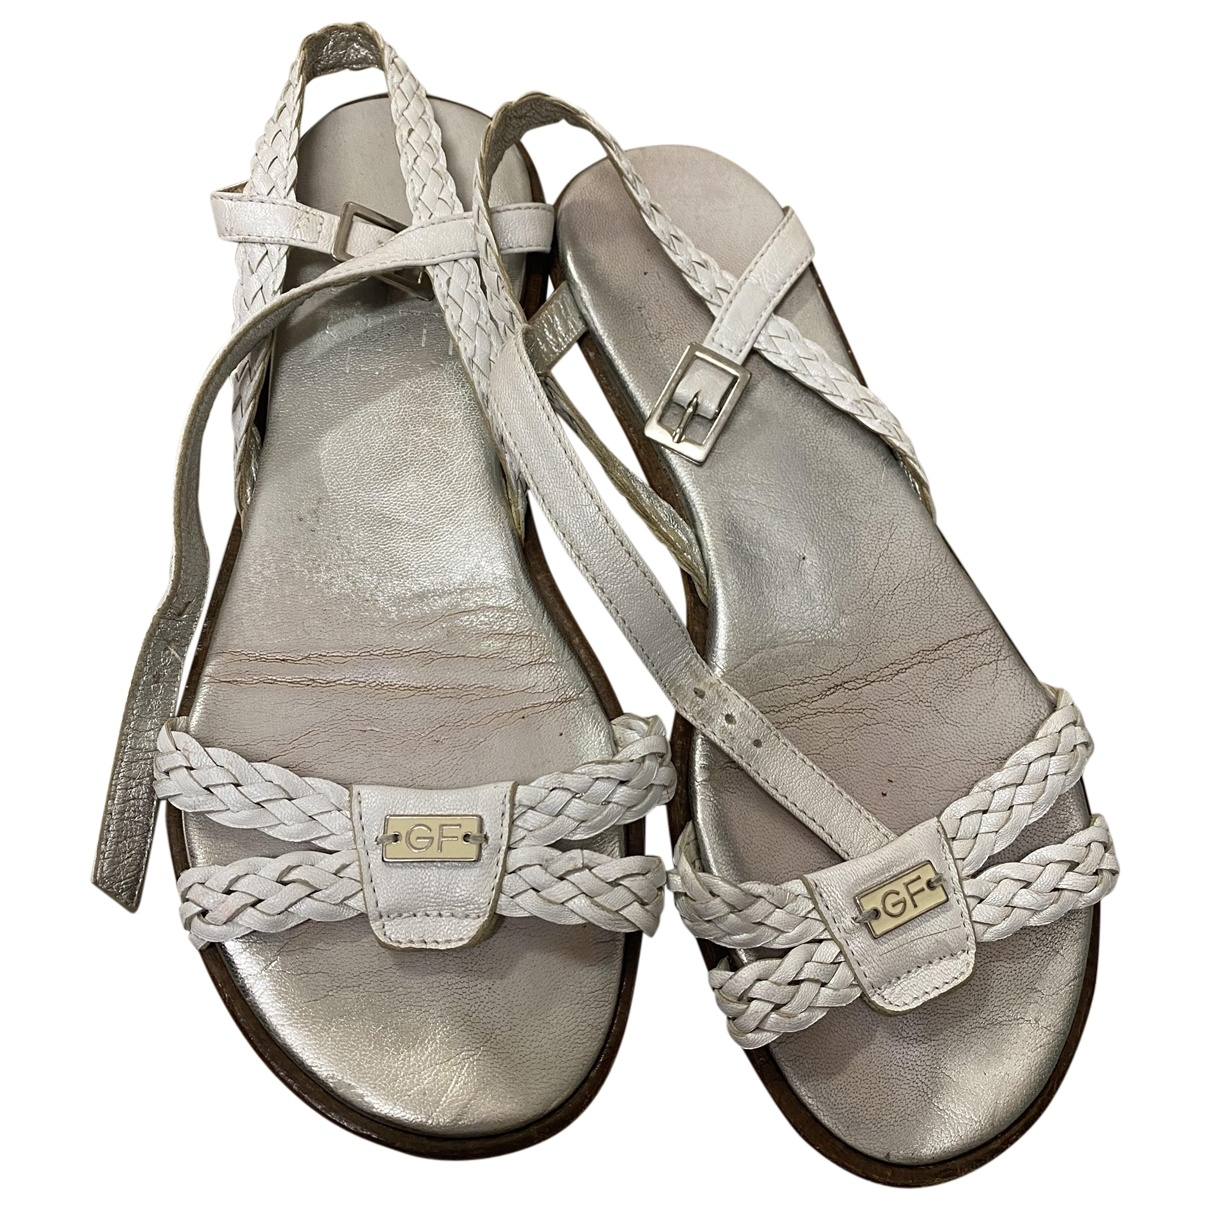 Gianfranco Ferré \N White Leather Sandals for Women 38 EU